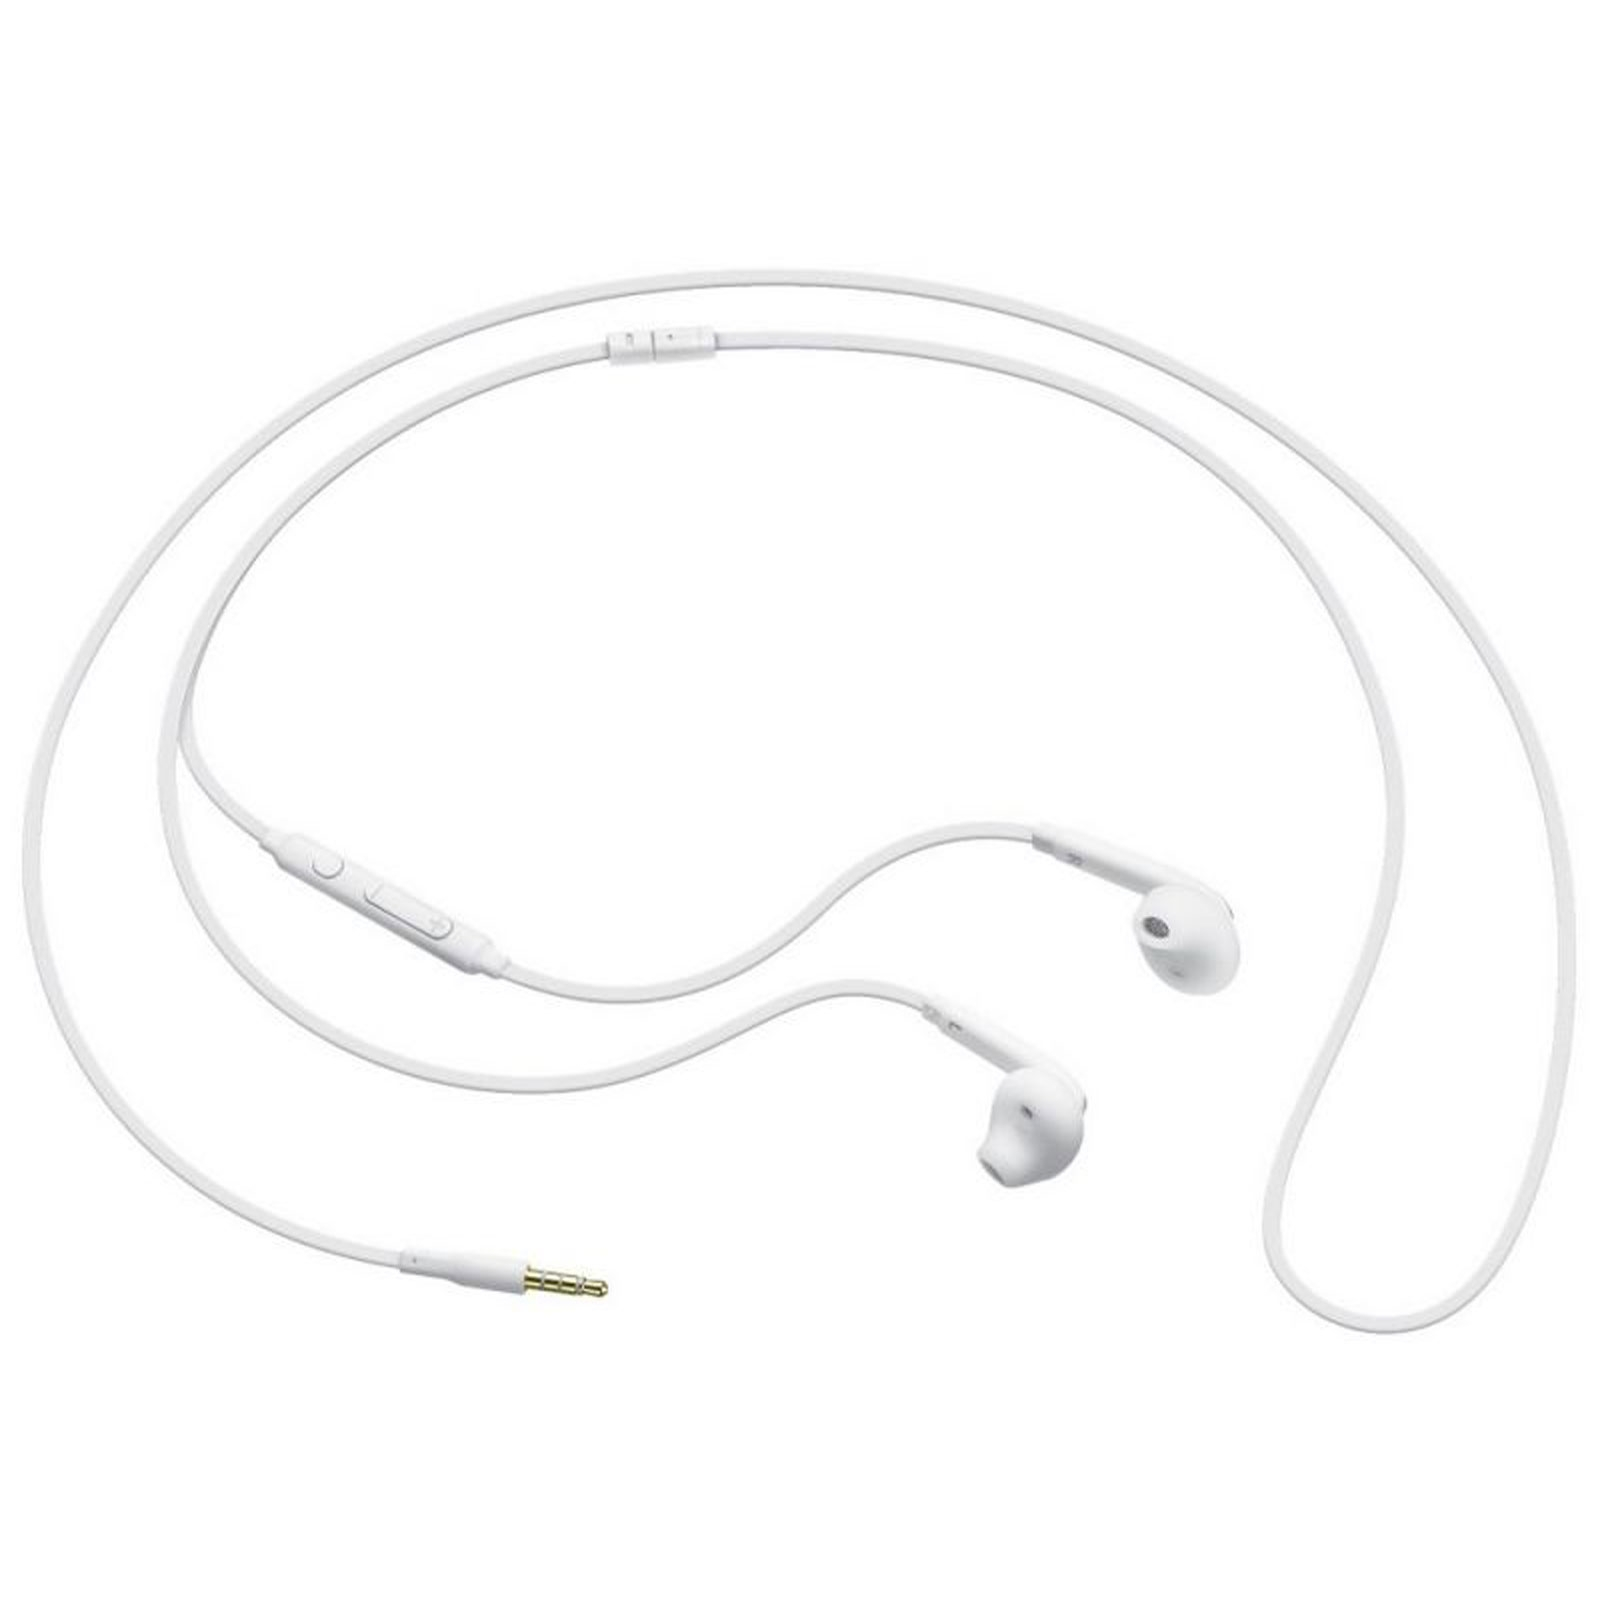 Sorcier John 966 furthermore 3837 Eo Eg920bw In Ear Galaxy S6 3700785420822 further Chassis Interne Bezel Cadre Blanc Pour Samsung Galaxy S3 Mini I8190 as well Chargeur Pour Iphone Muvit together with Chargeur Voiture Joyroom 5v 24a Lightning 8pin Usb Blanc Xml 322 771 341 9806. on cable iphone 6 pour voiture